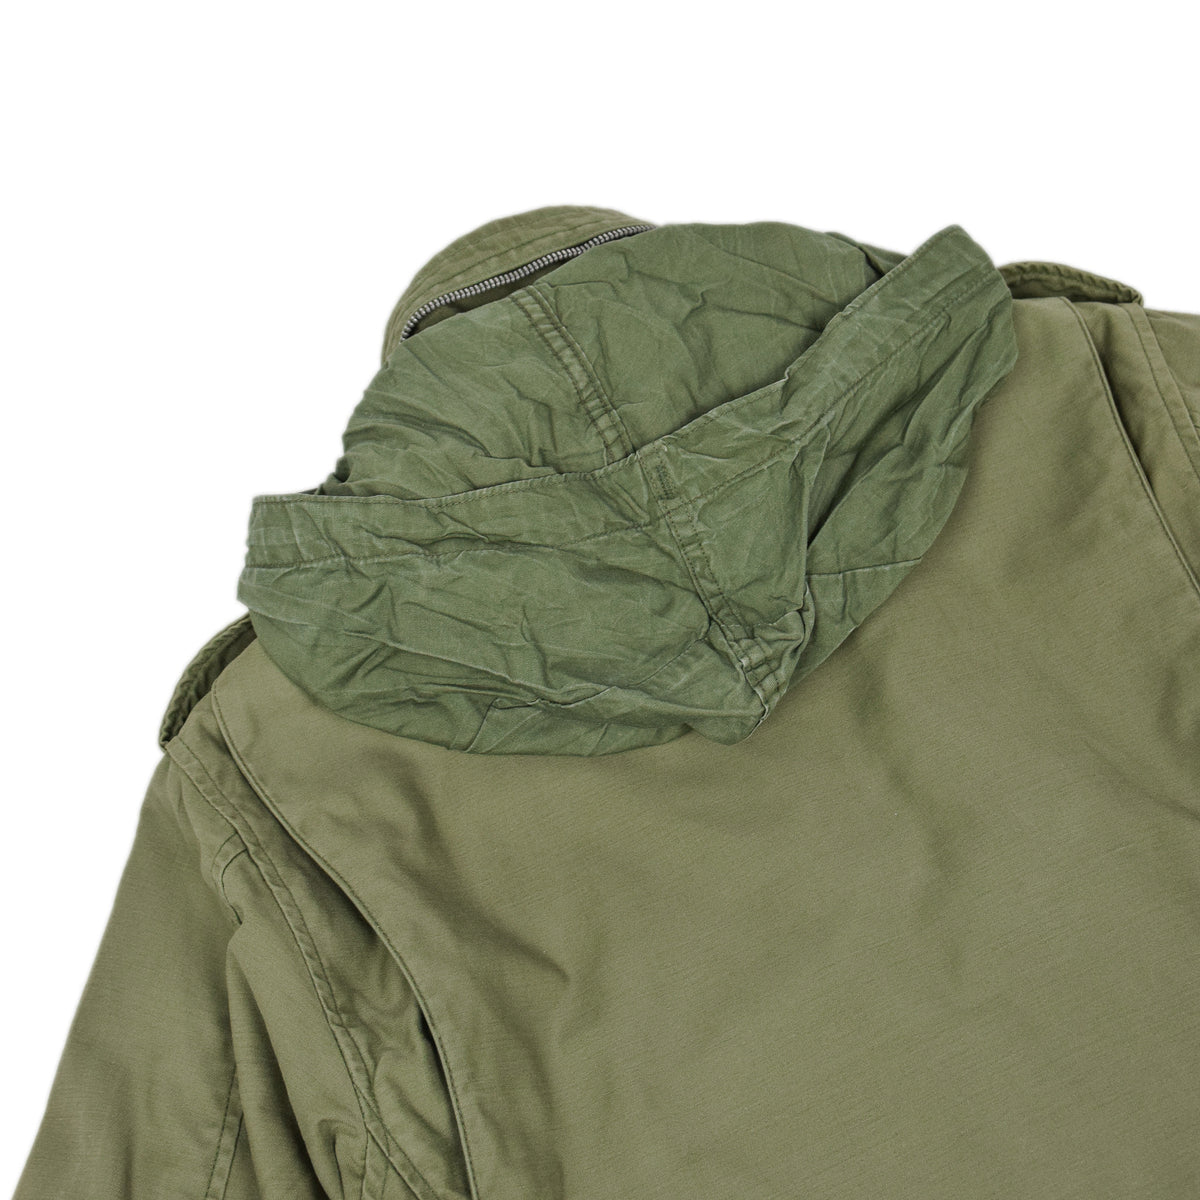 Vintage 60s Vietnam M-65 Field Cotton Sateen 0G-107 Green US Army Coat S Short hood